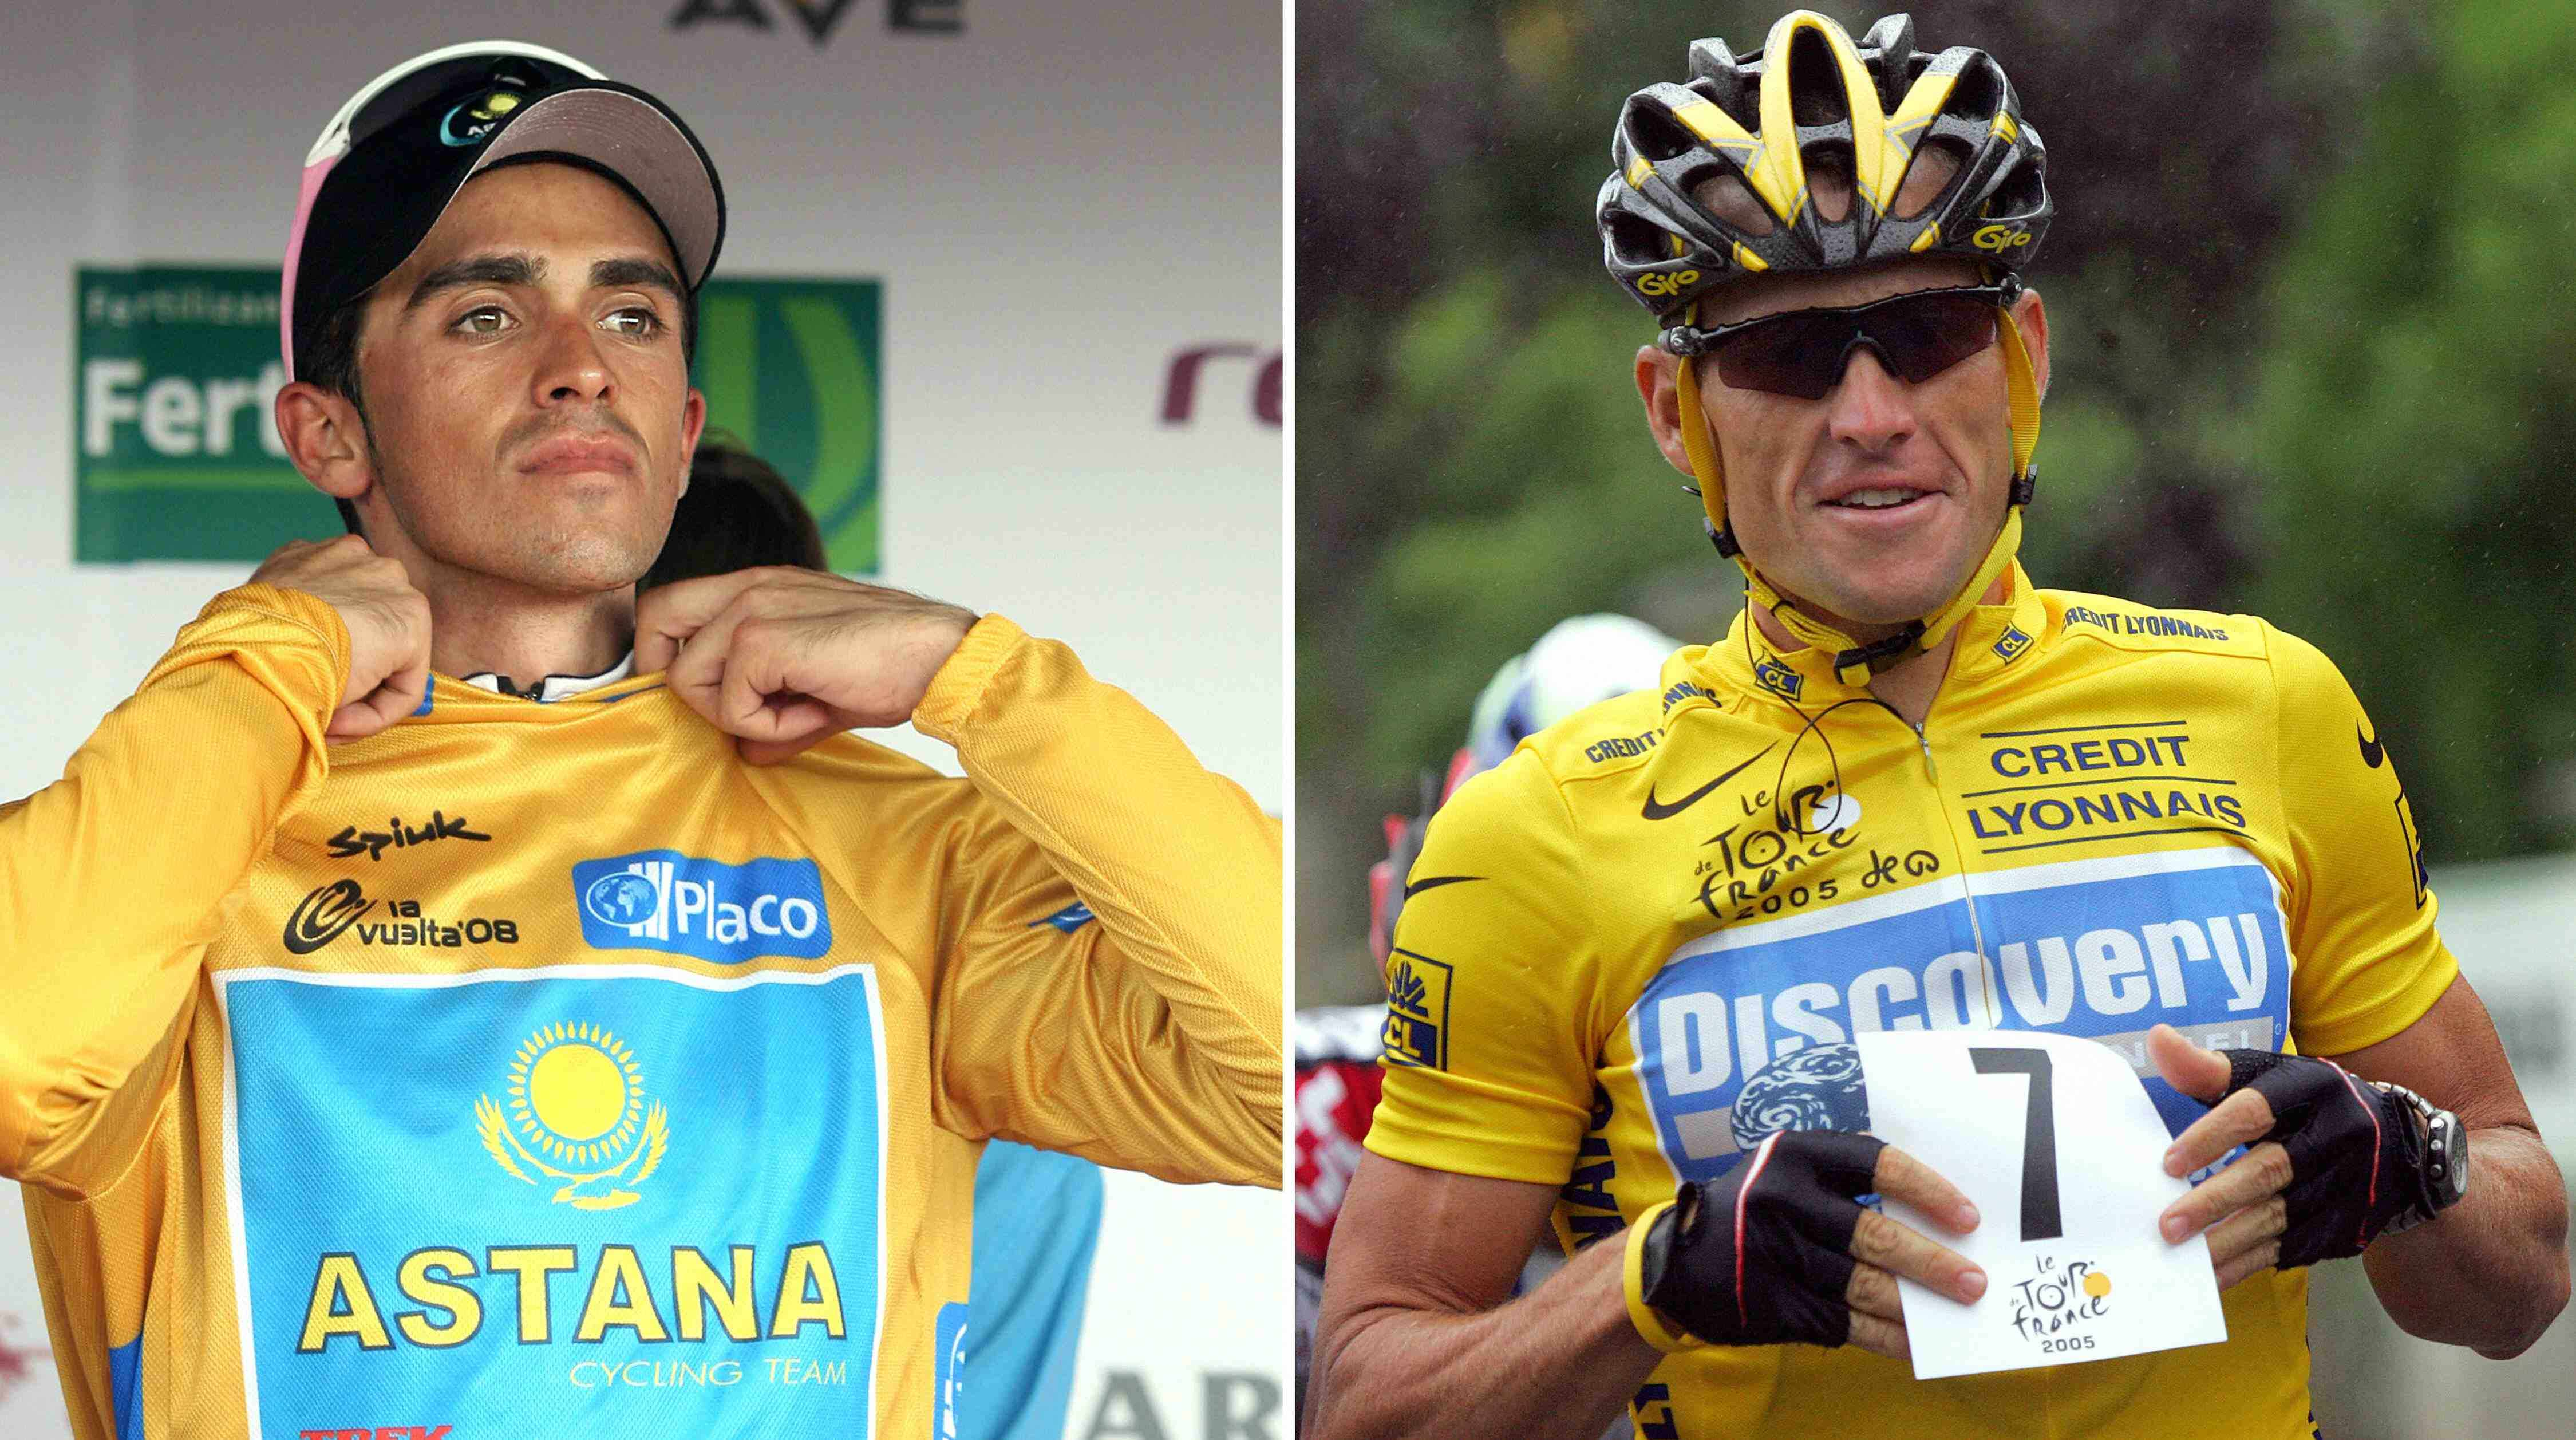 There may not be room for Alberto Contador and Lance Armstrong on the same team in 2009.